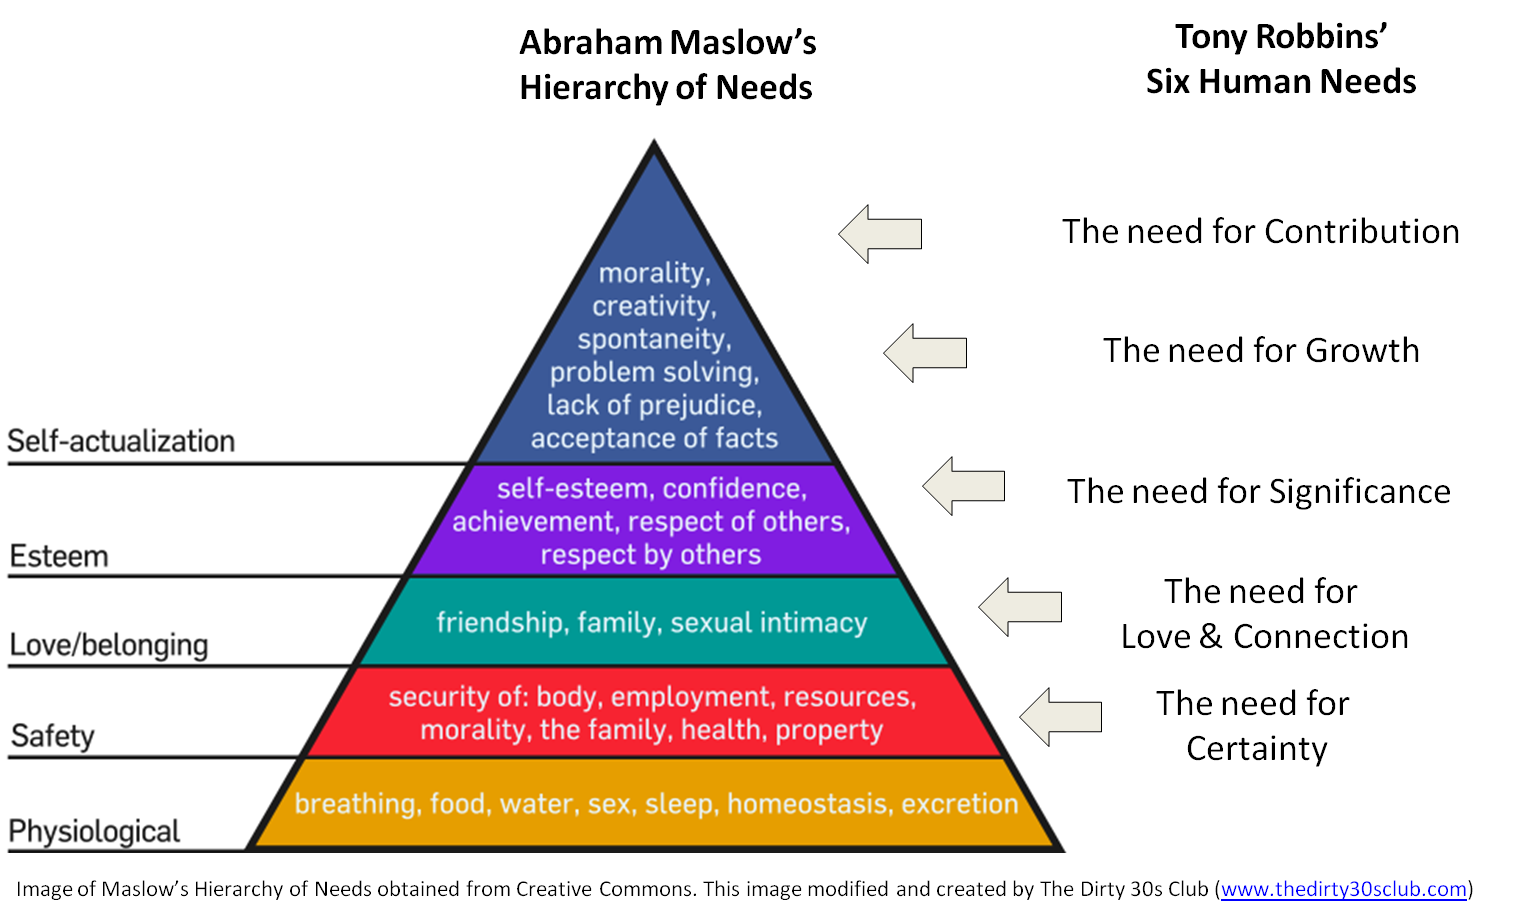 While Maslow S Thoughts On Human Needs Are Structured In